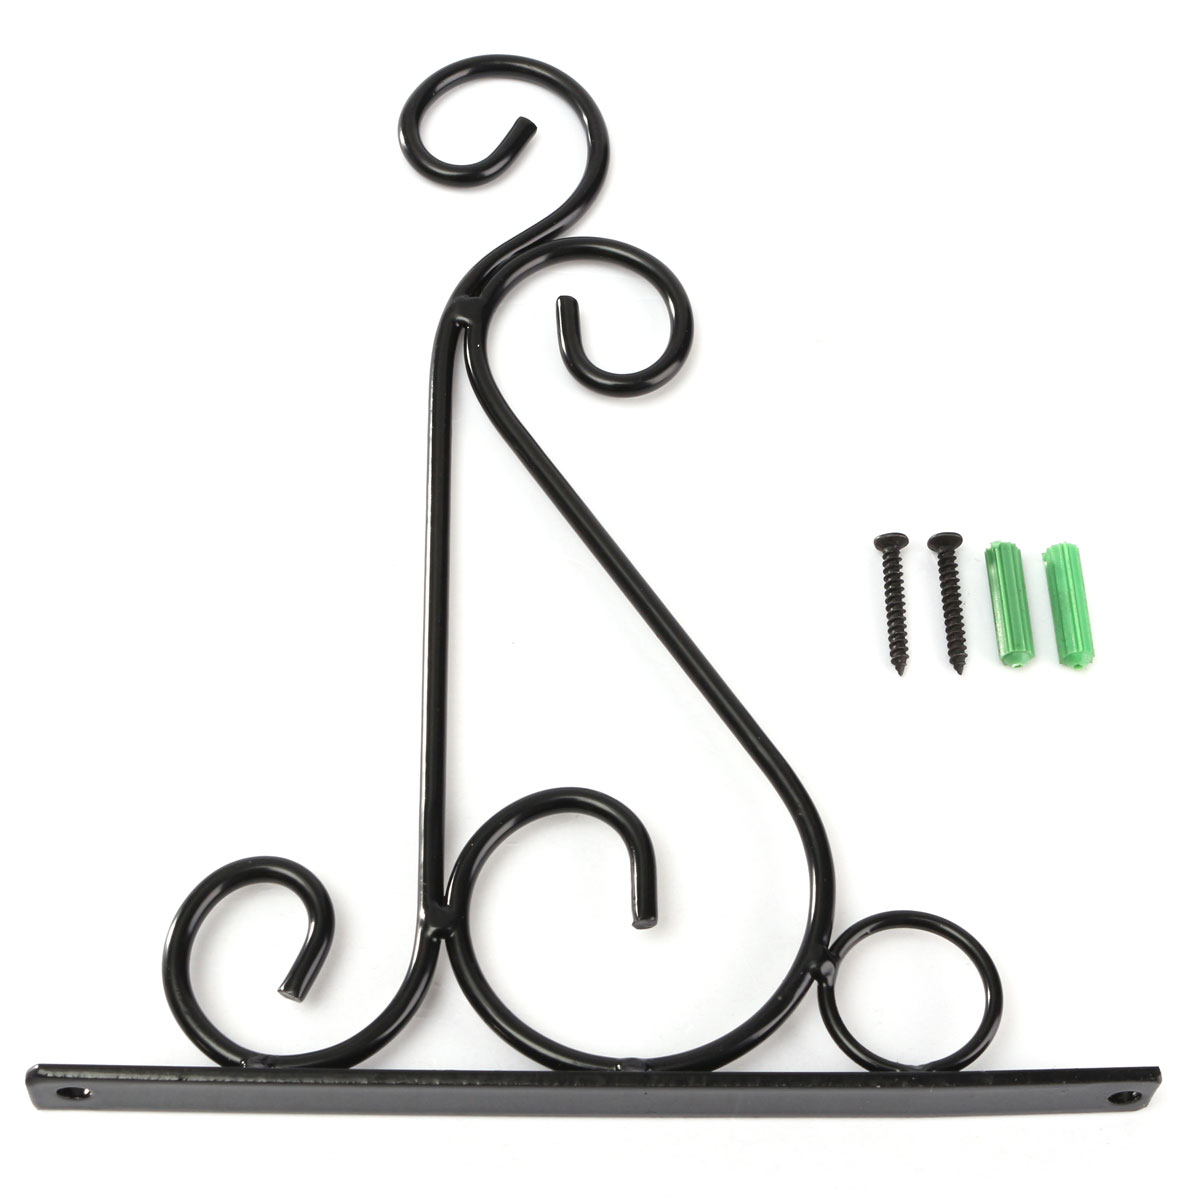 Wall Hooks For Hanging Lights : Iron Garden Wall Light Hanging Flower Plant Pot Bracket Hook Shelf Stand Holder Black - Intl ...